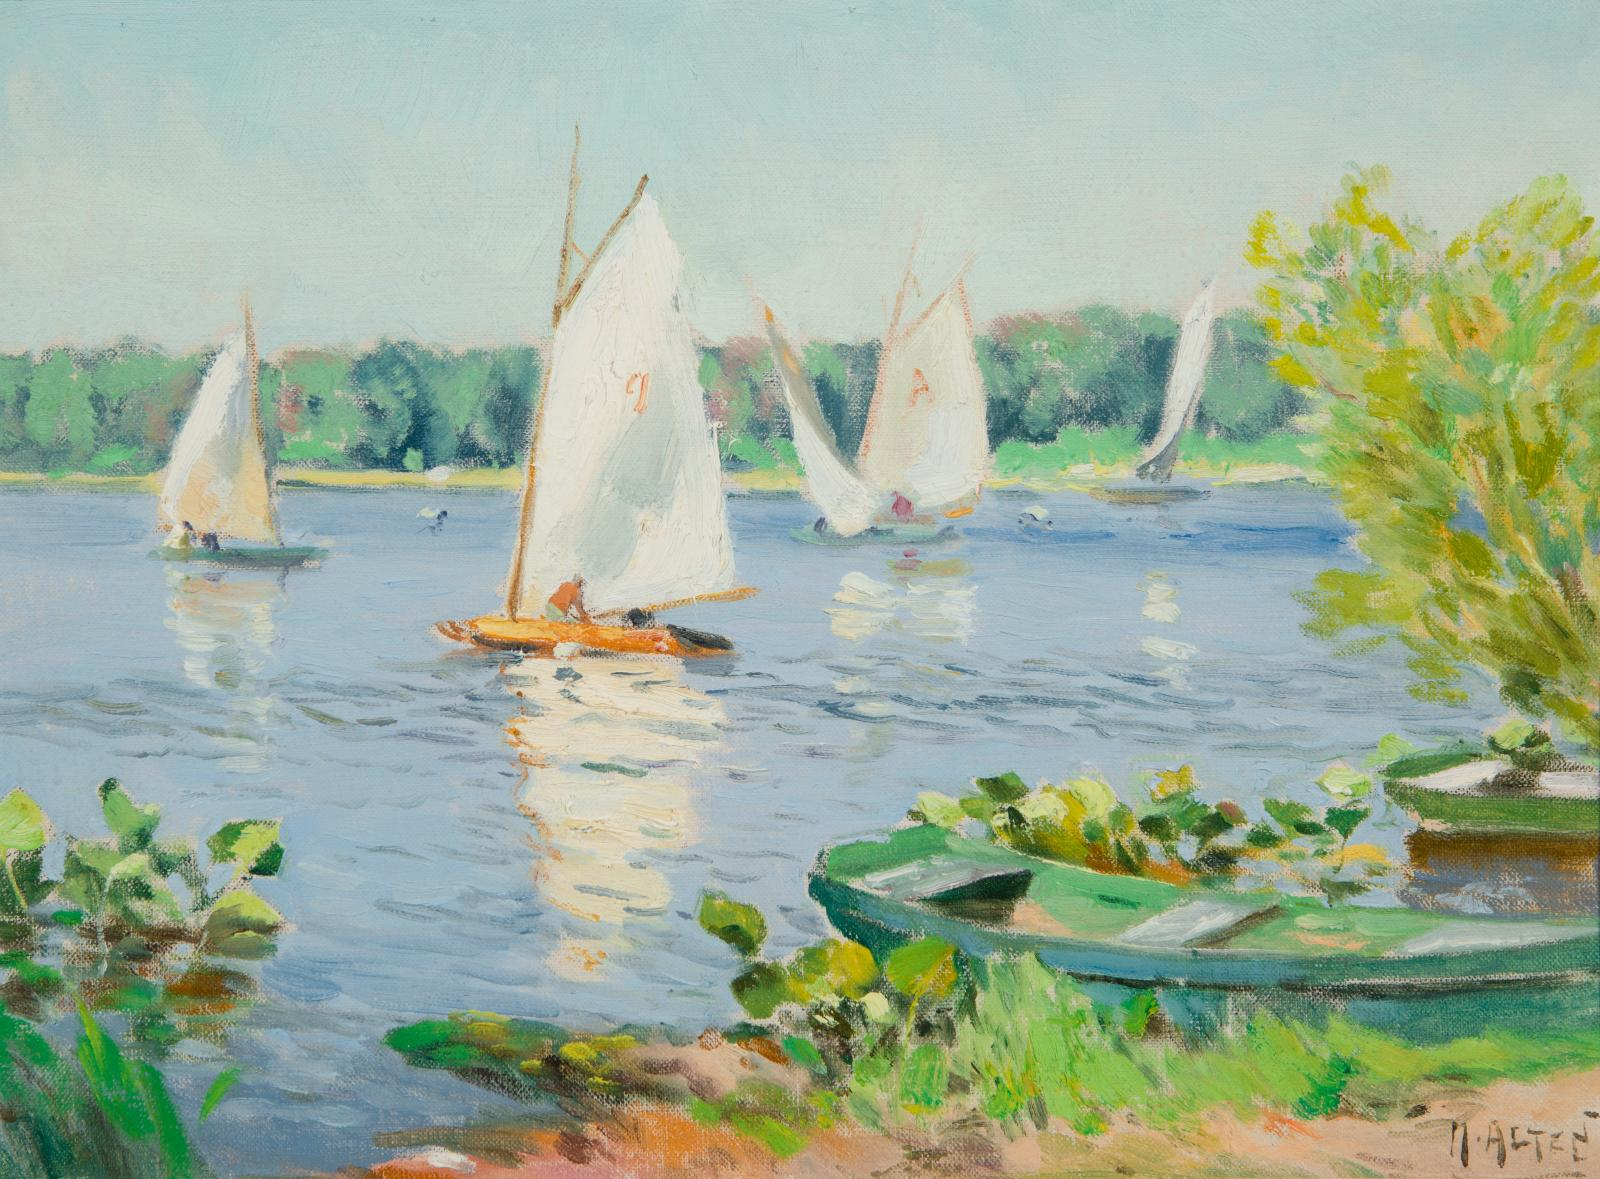 Four white sailboats in water, trees in the distance.